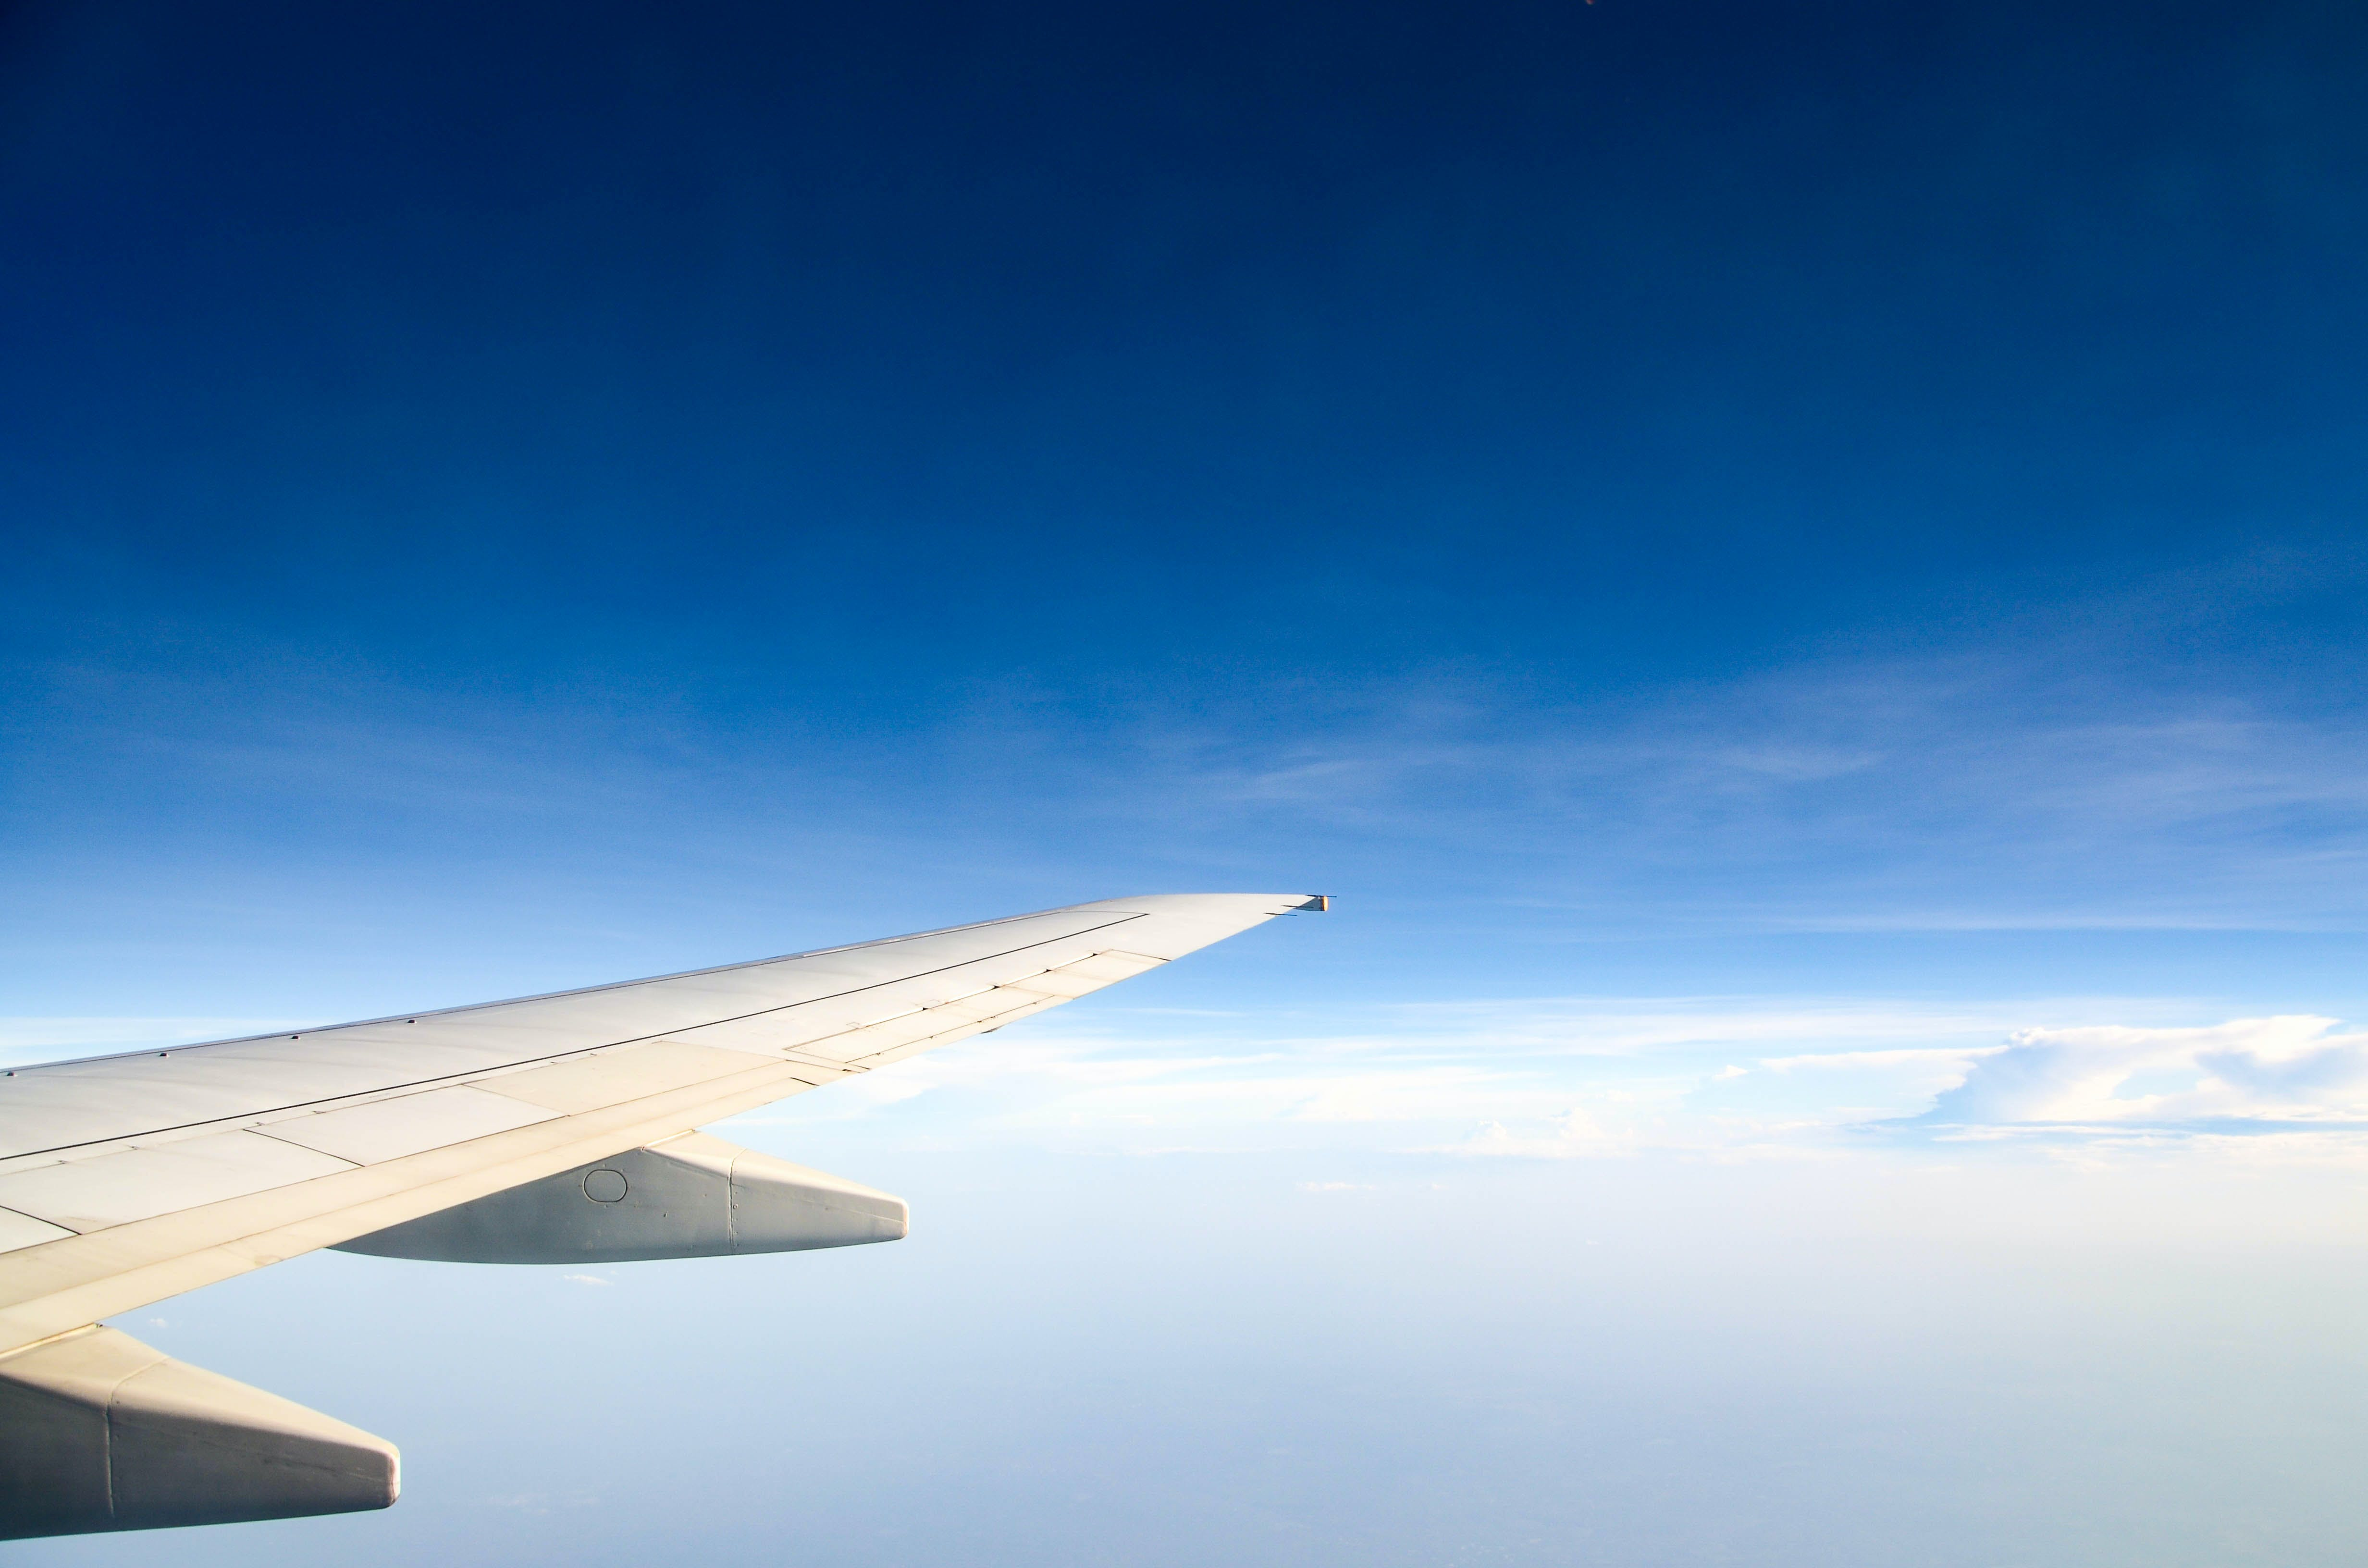 Photography of Aircraft Wing